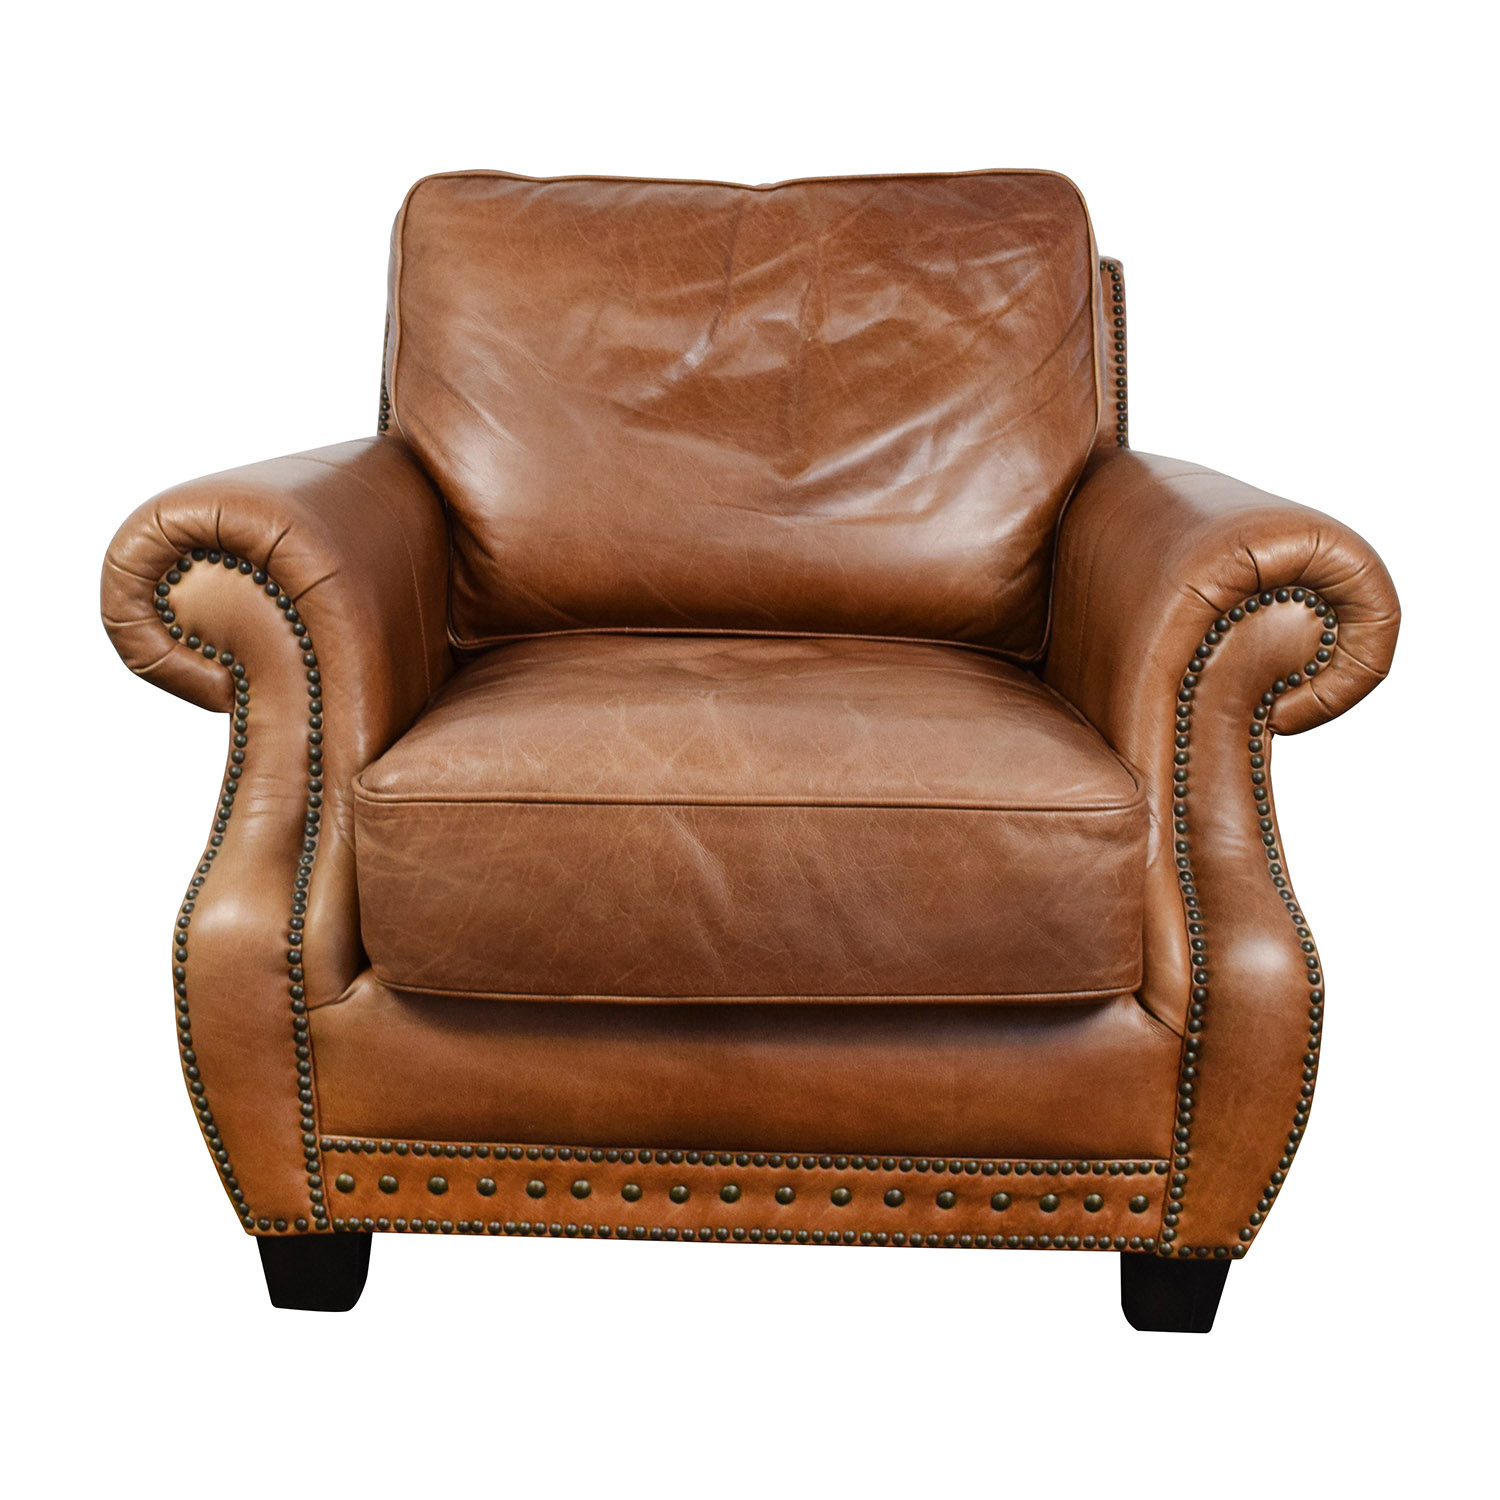 63% OFF Drexel Heritage Drexel Heritage Bergere Green Gold and